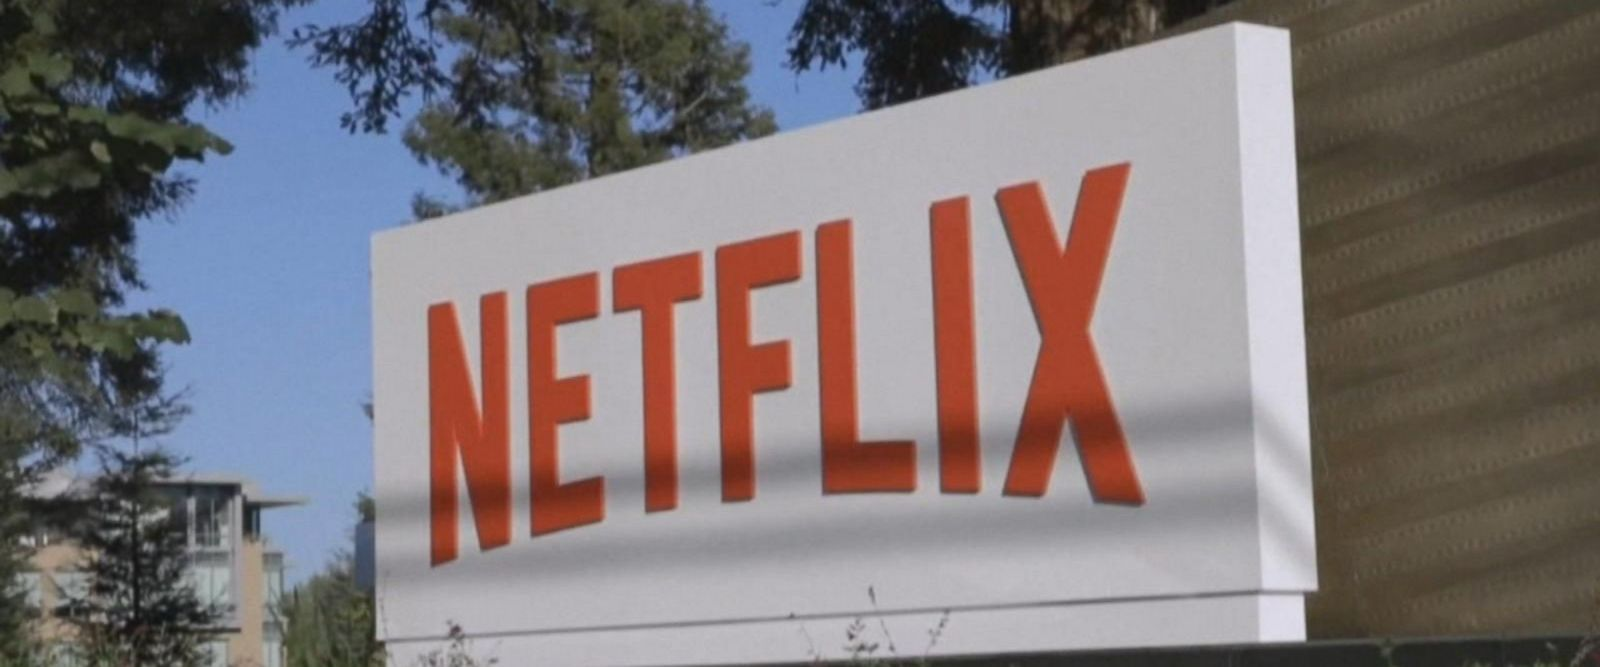 VIDEO: Netflix exceeds expected subscriber growth